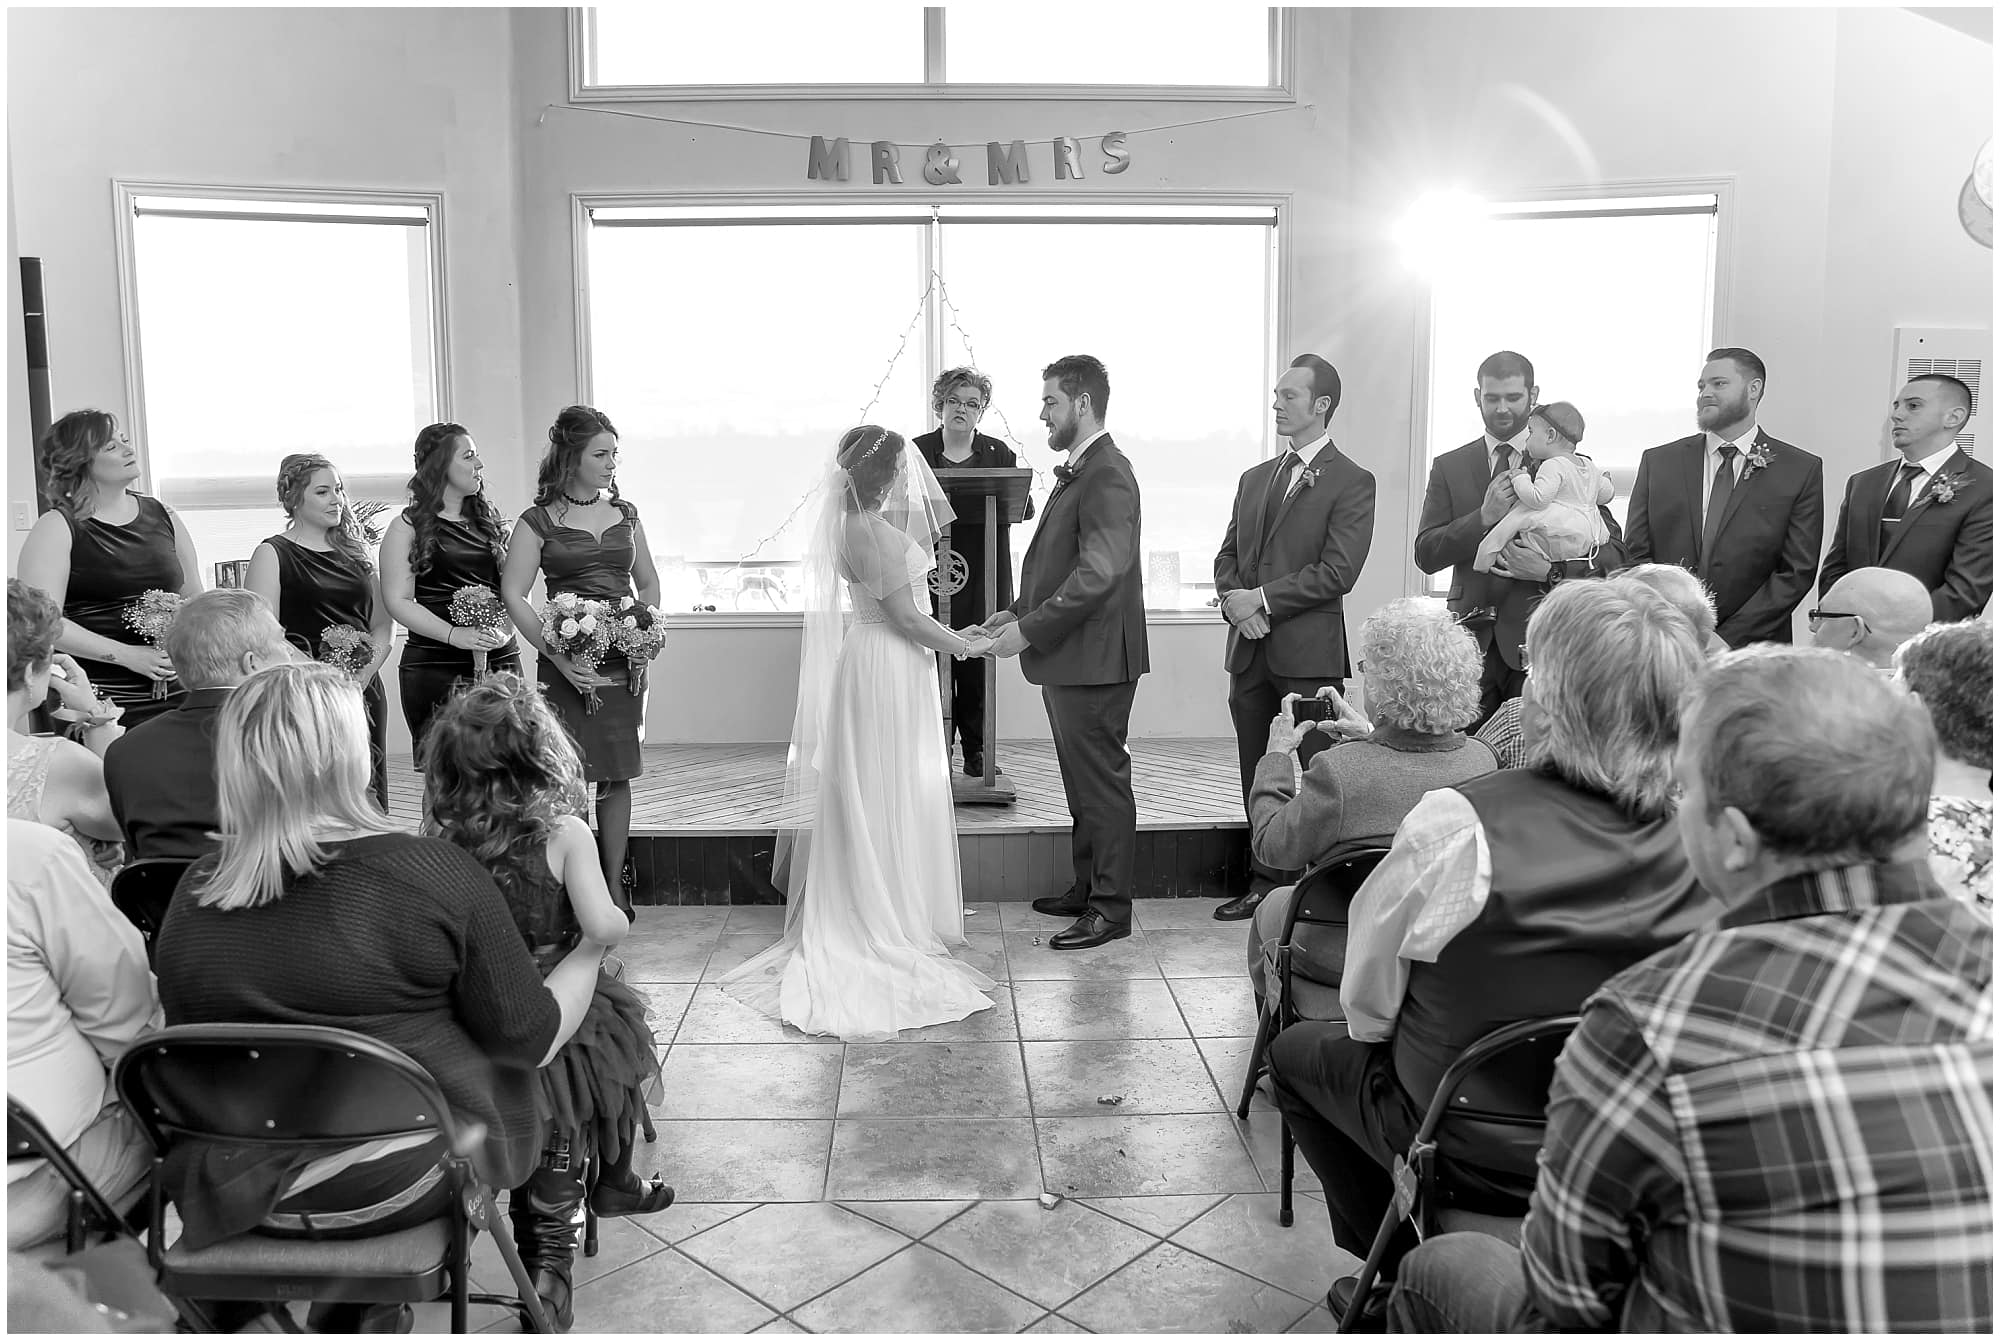 The bride and groom during their wedding ceremony at Fisherman's Cove in Eastern Passage NS.